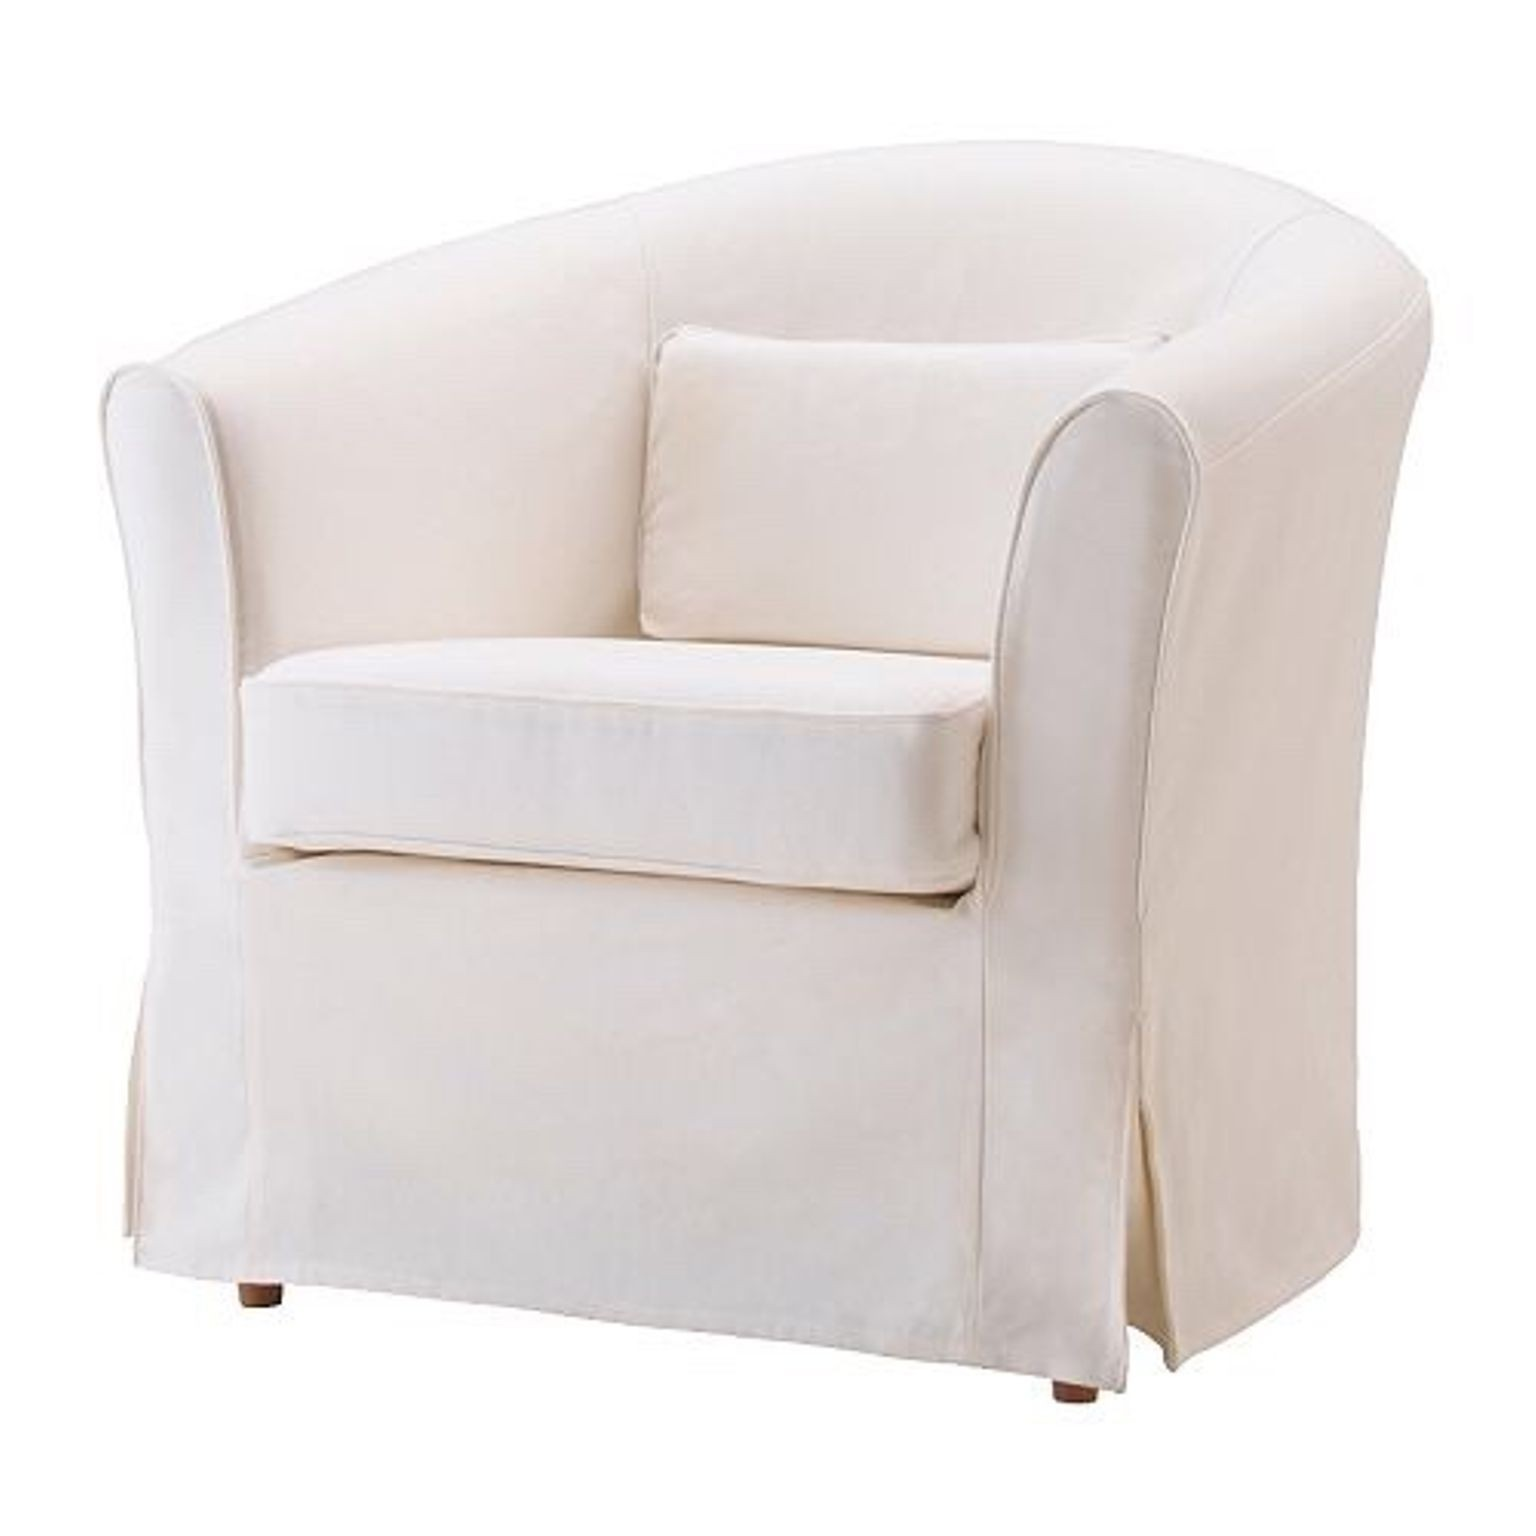 Genial Overstuffed Chair Covers